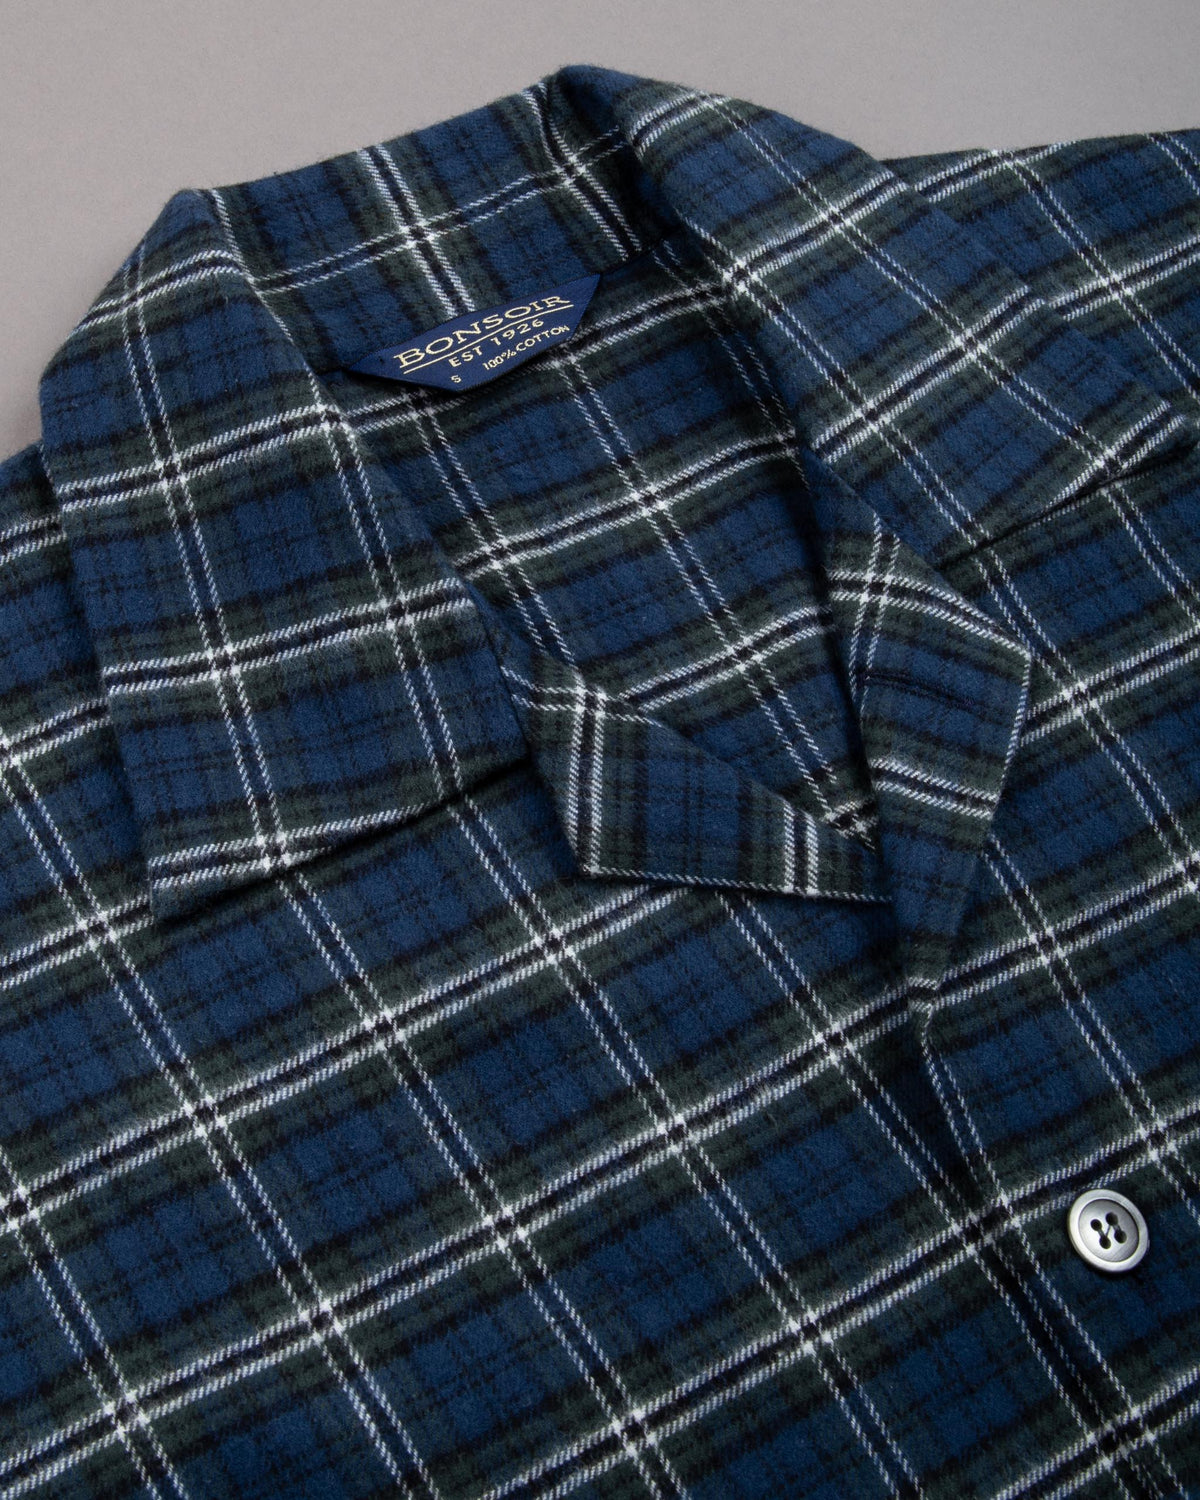 Brushed Cotton Pyjama